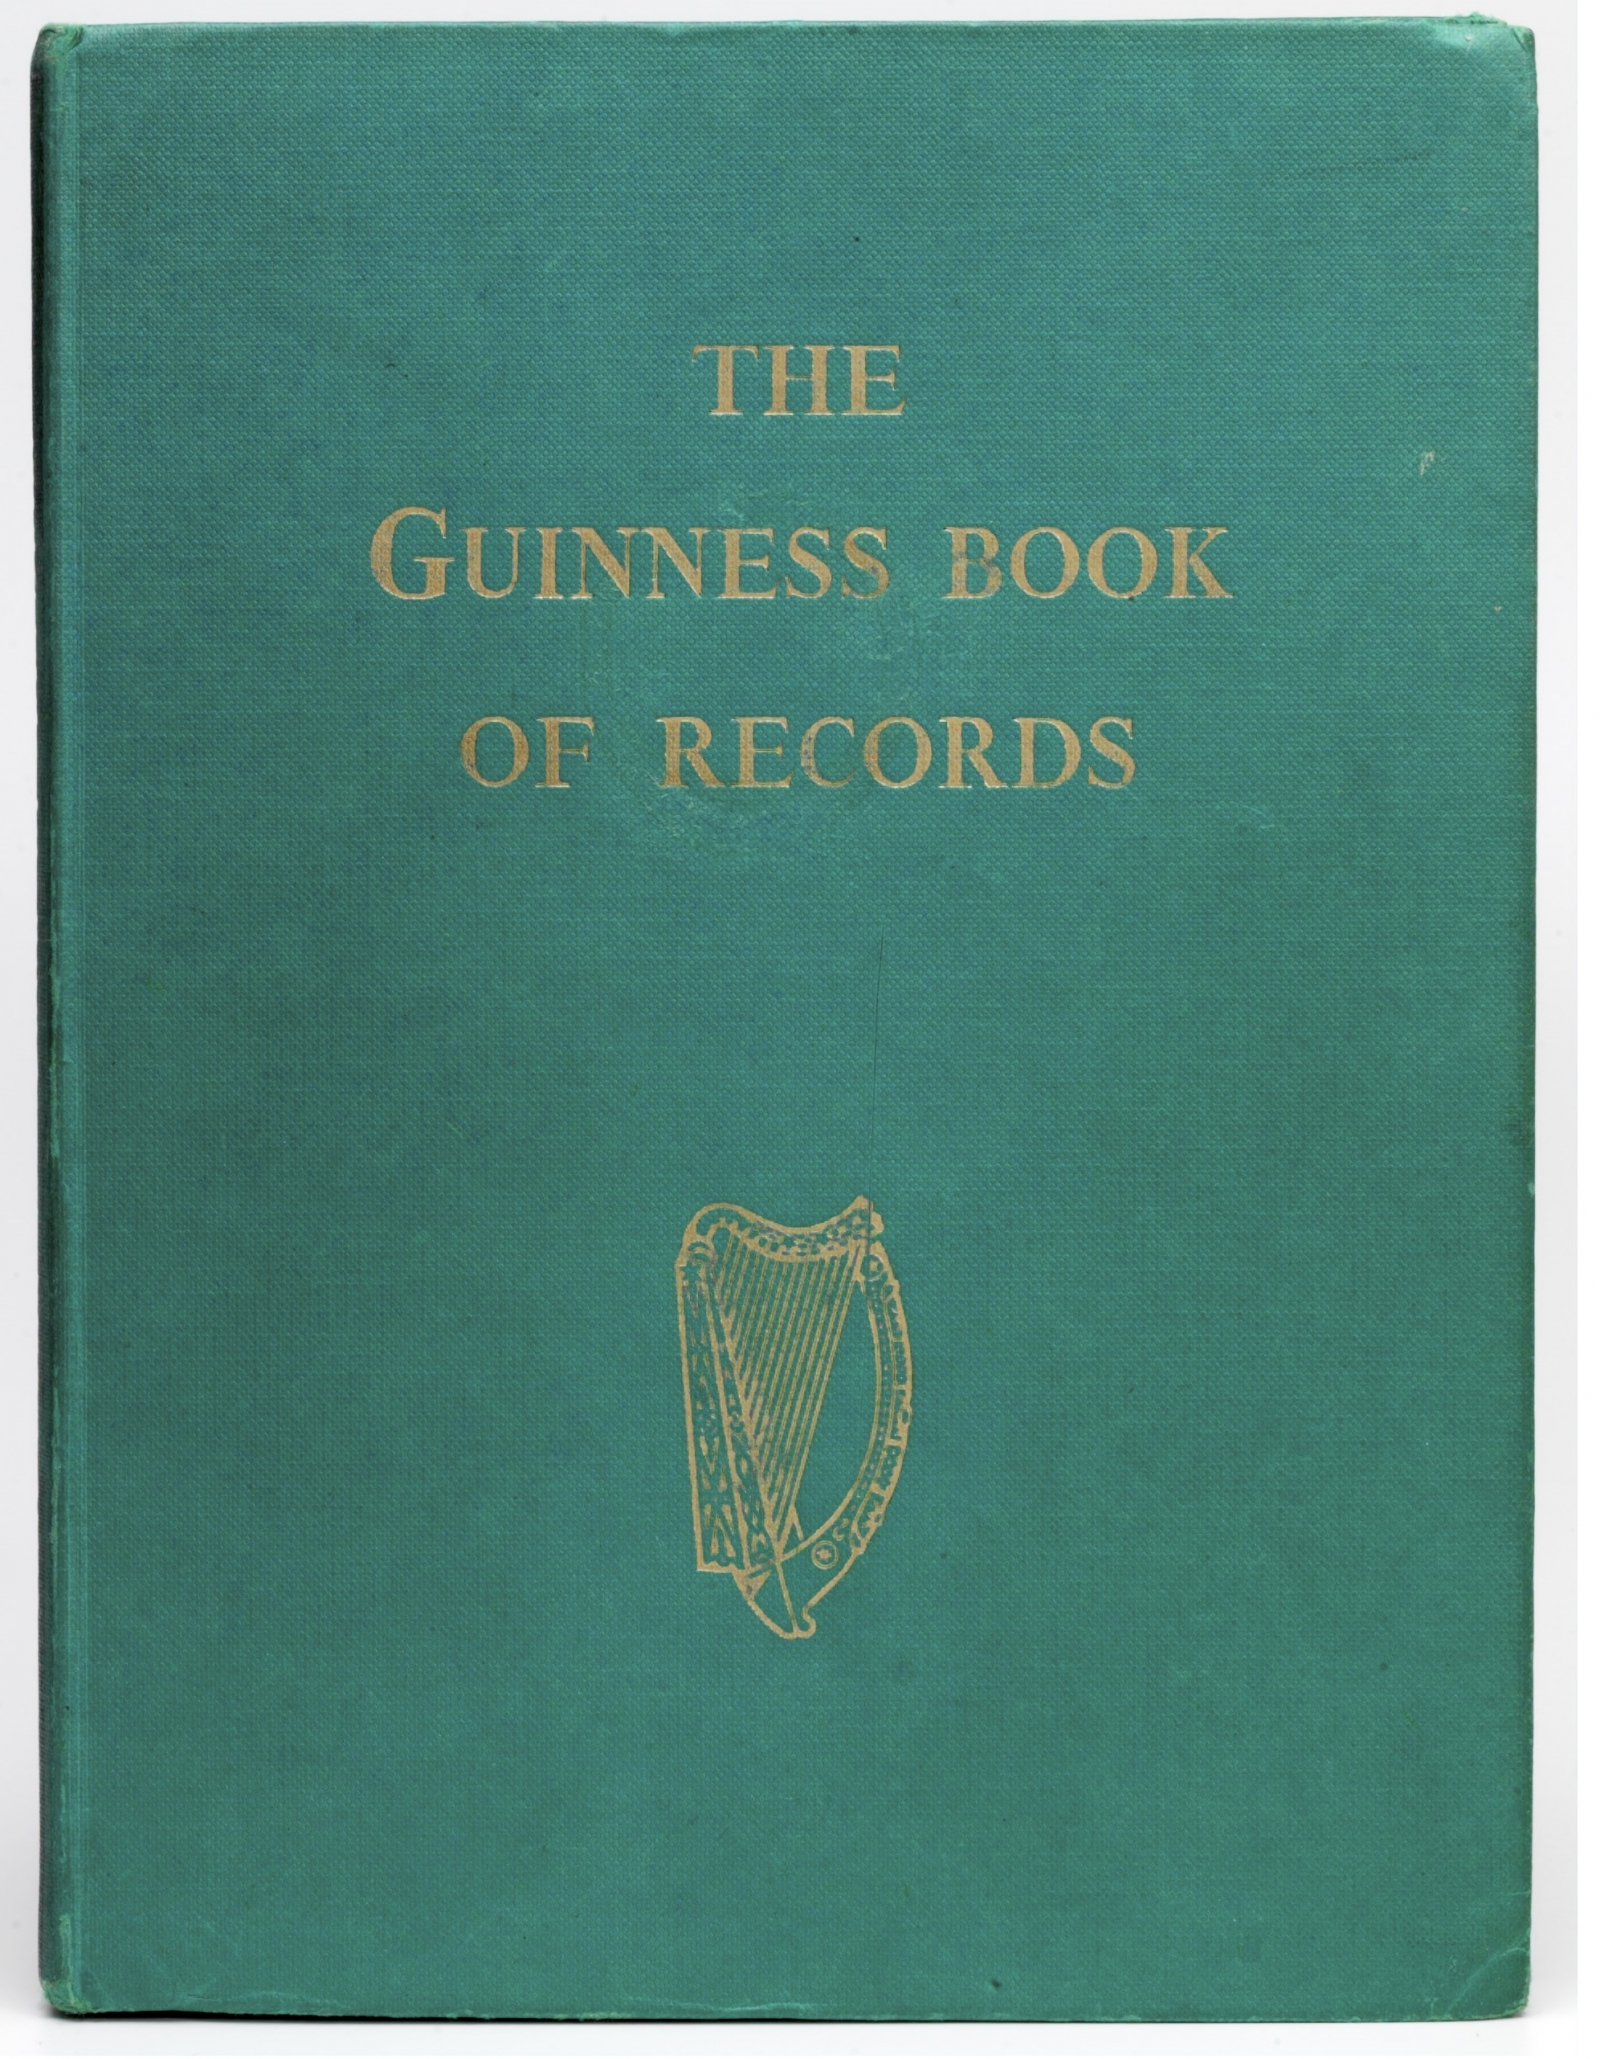 Guinness Book of Records 1955